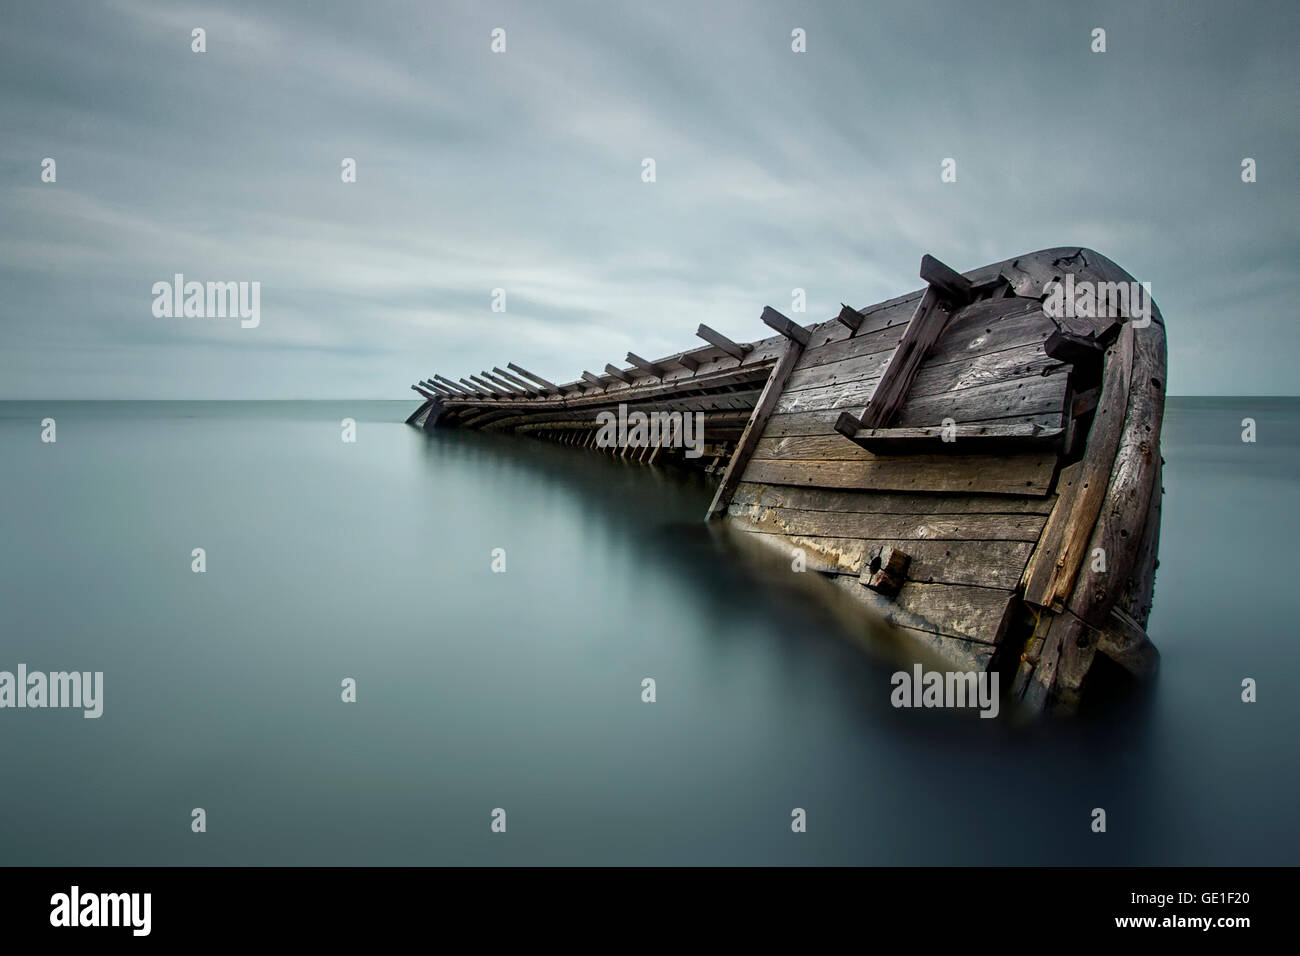 Shipwrecked boat in sea - Stock Image